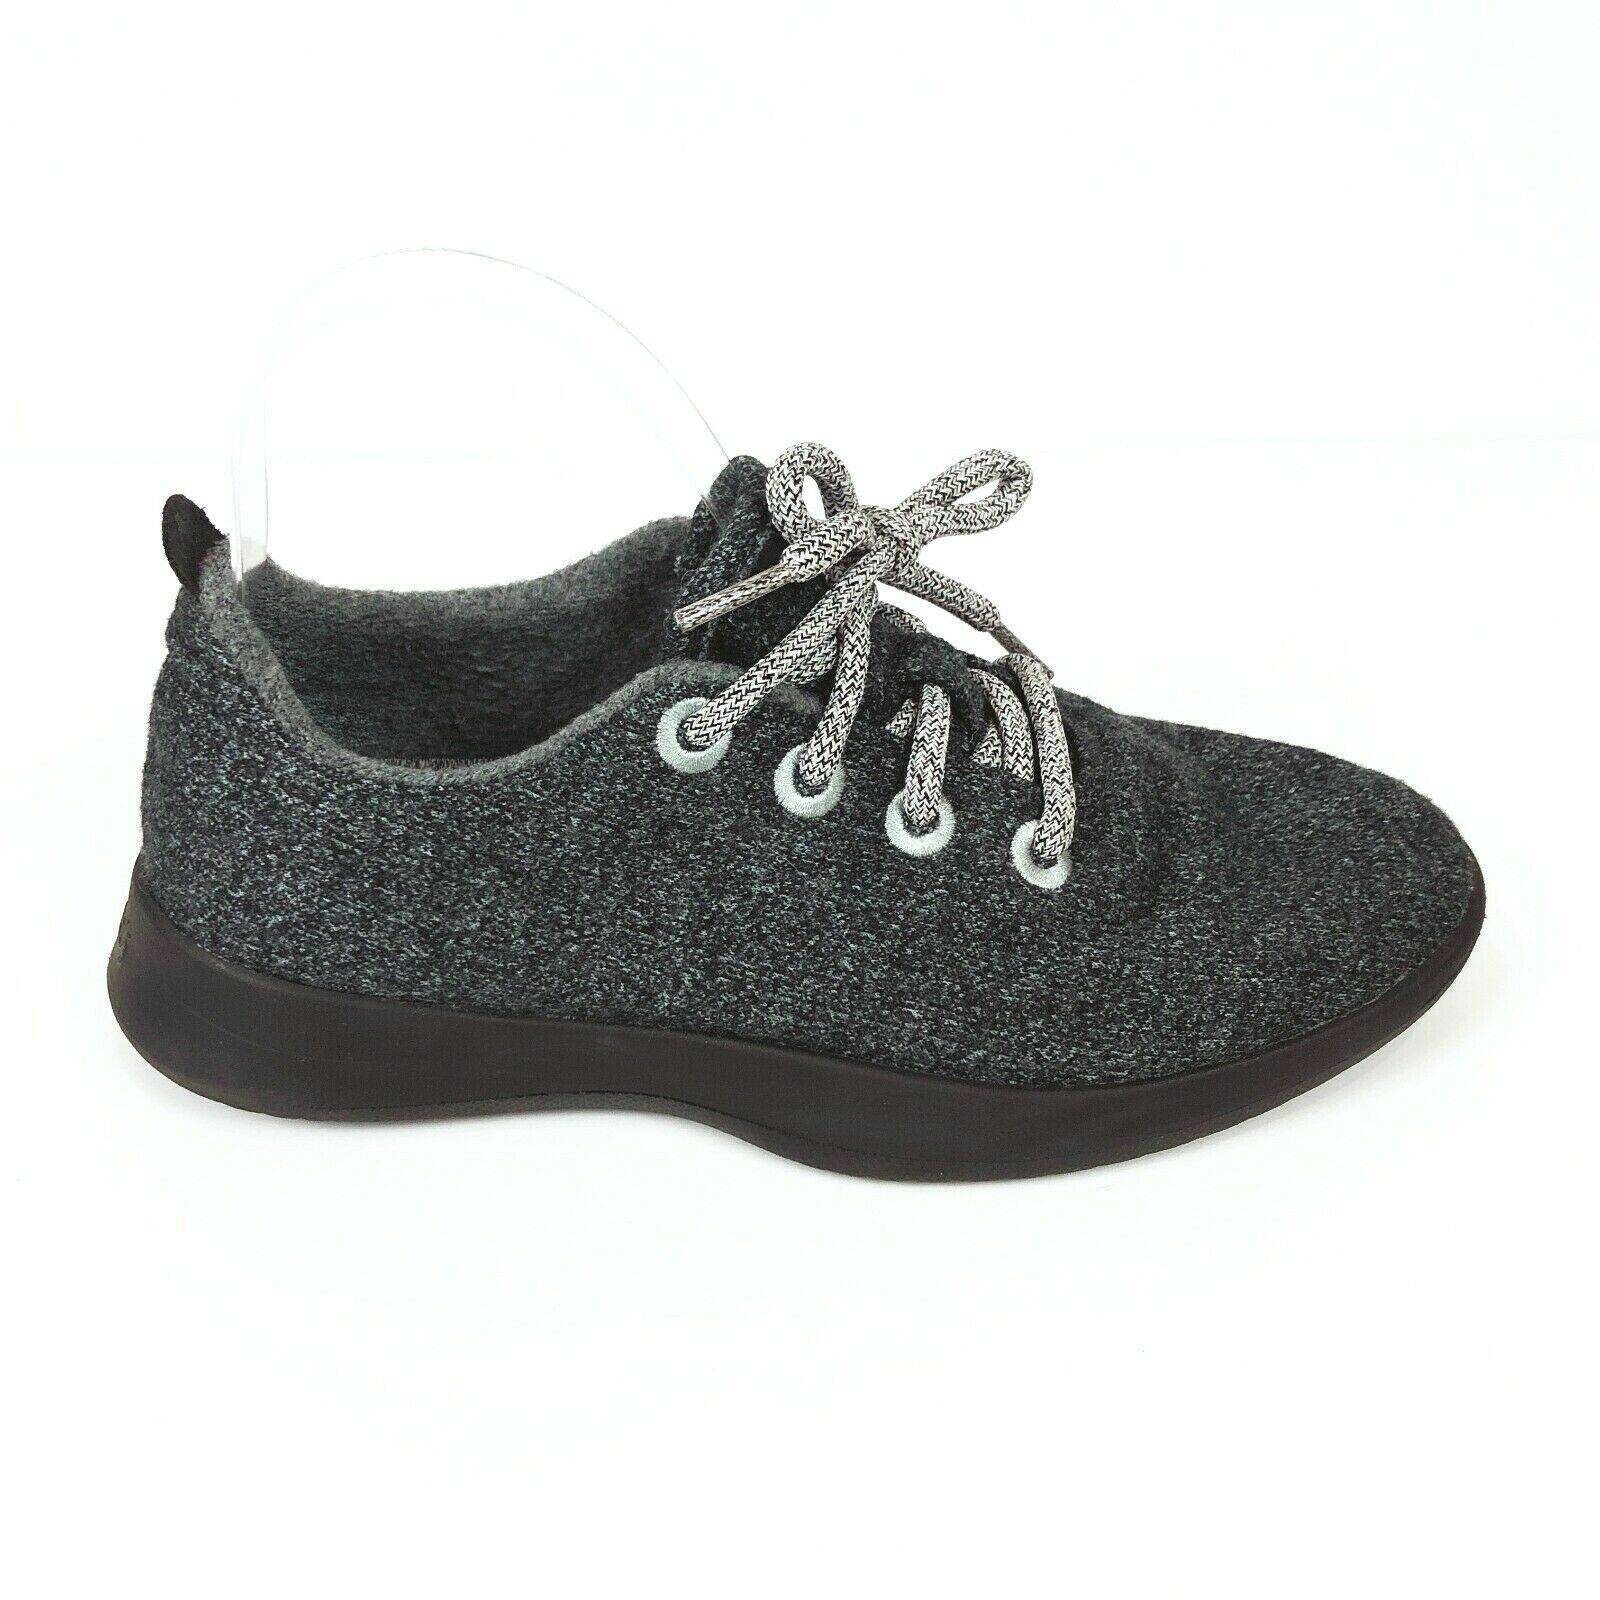 Allbirds Wool Runners Sneaker Women Sz 9